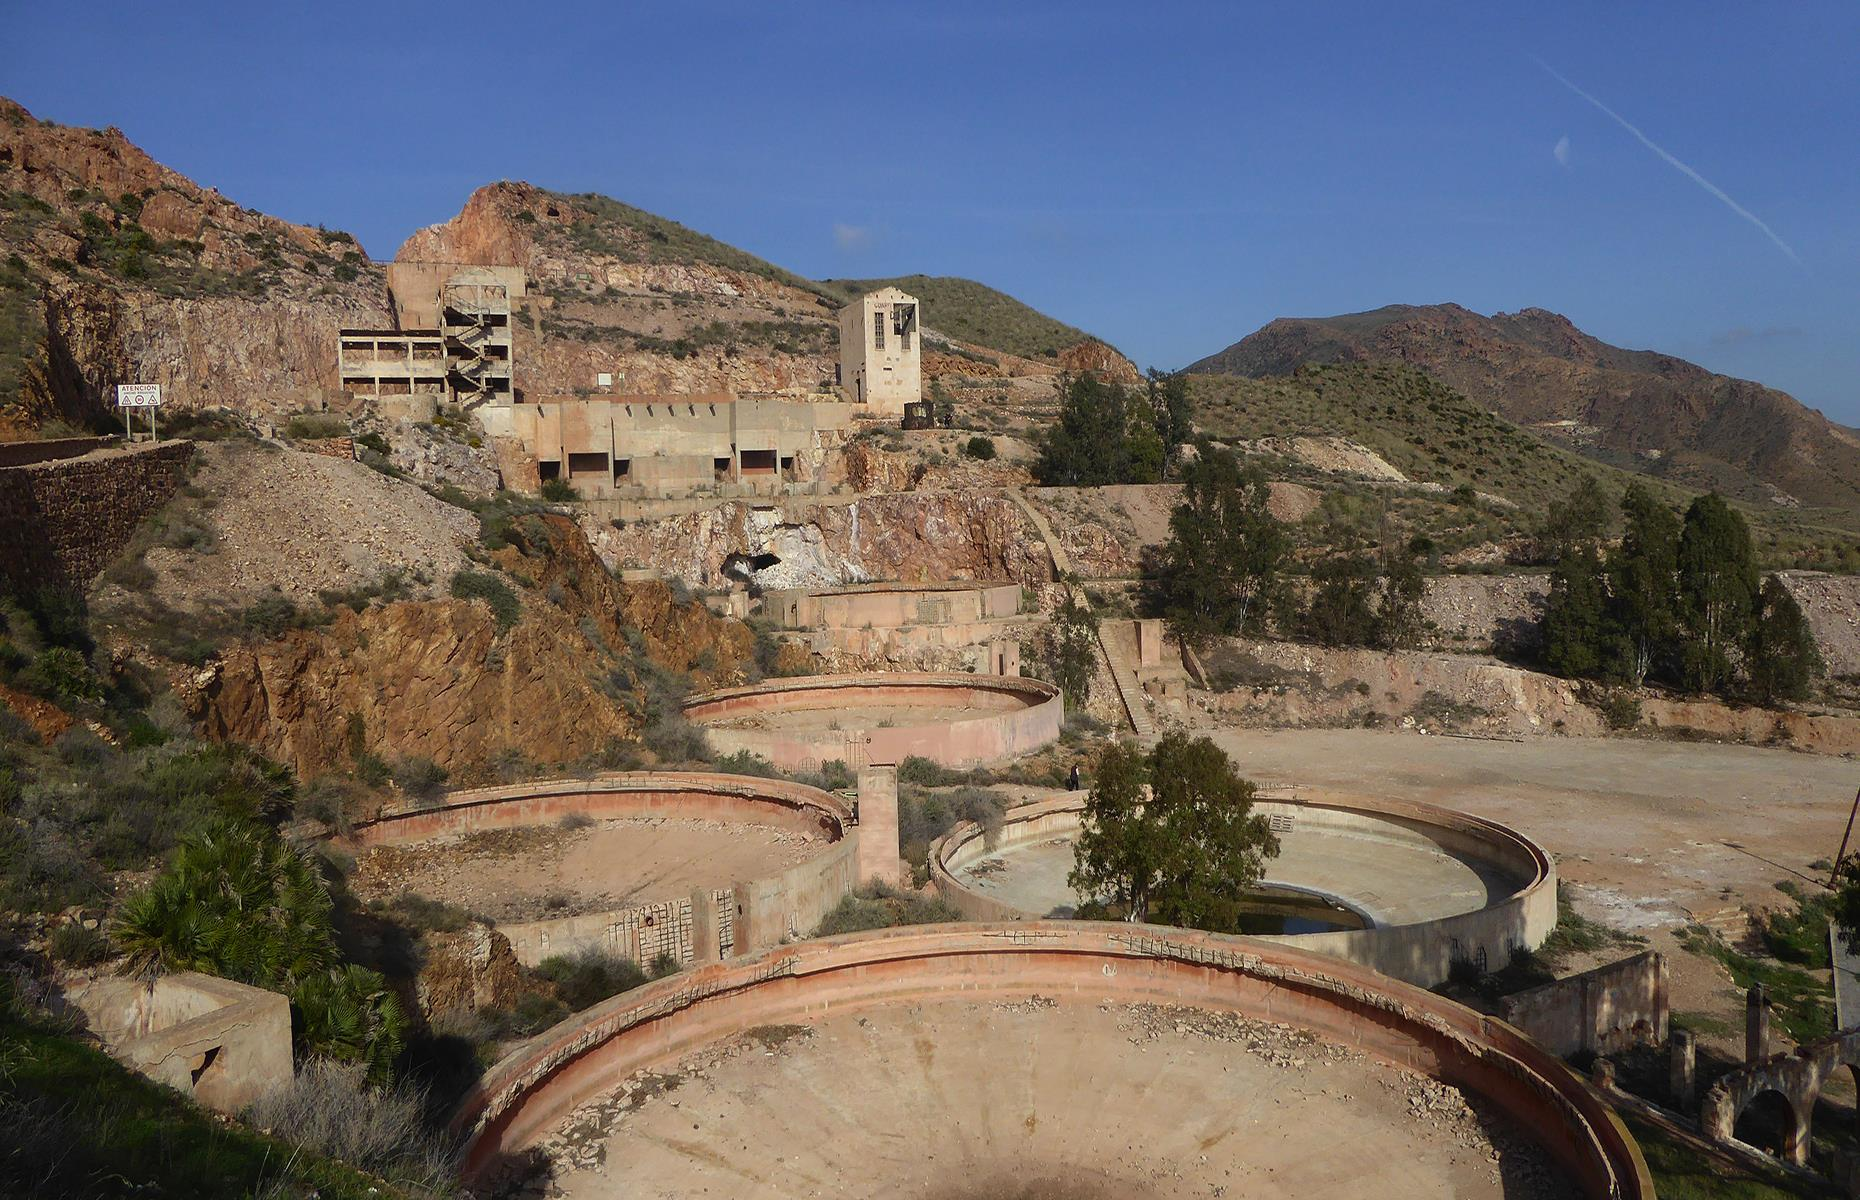 Slide 47 of 68: If you haven't been to Rodalquilar in Spain, chances are you've seen it on Indiana Jones and the Last Crusade. From 1864 to 1990 this was a bustling village with 1,400 people and one of the biggest gold mines in western Europe.